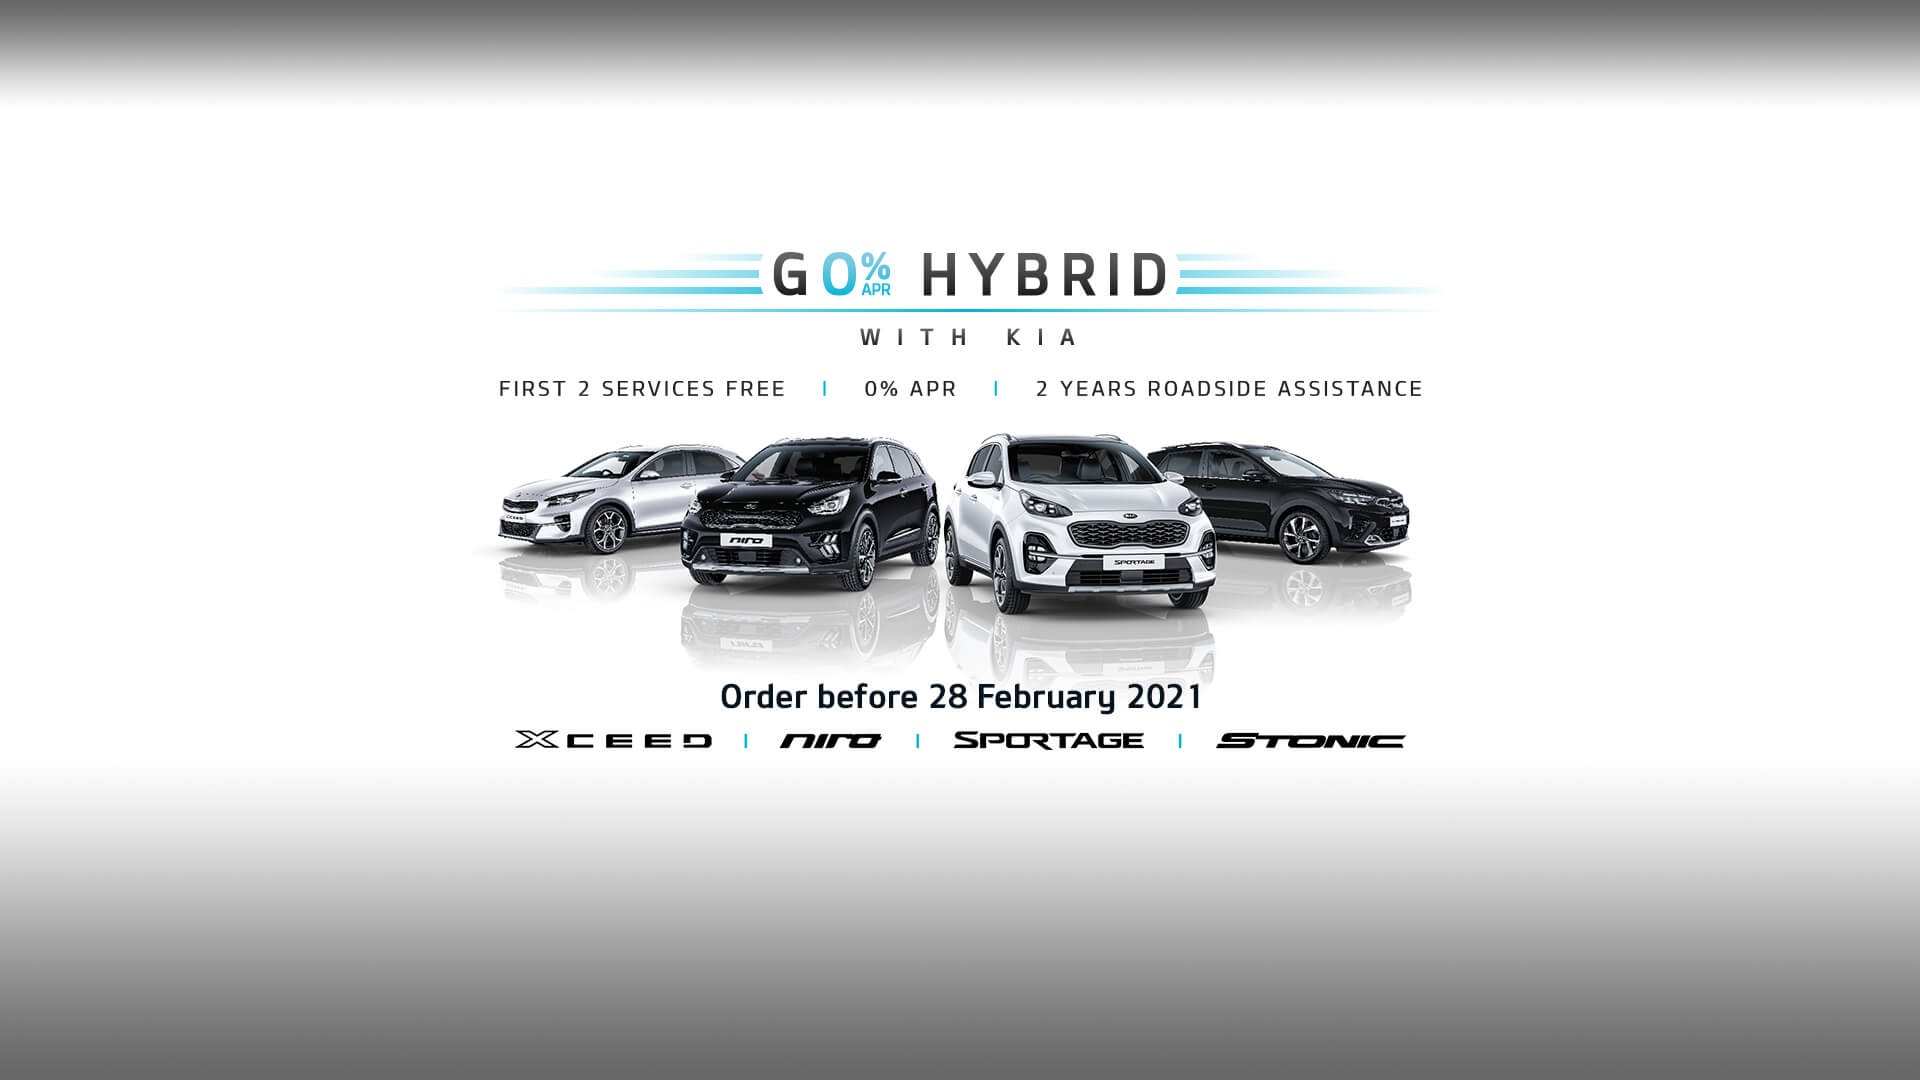 Go Hybrid with Kia